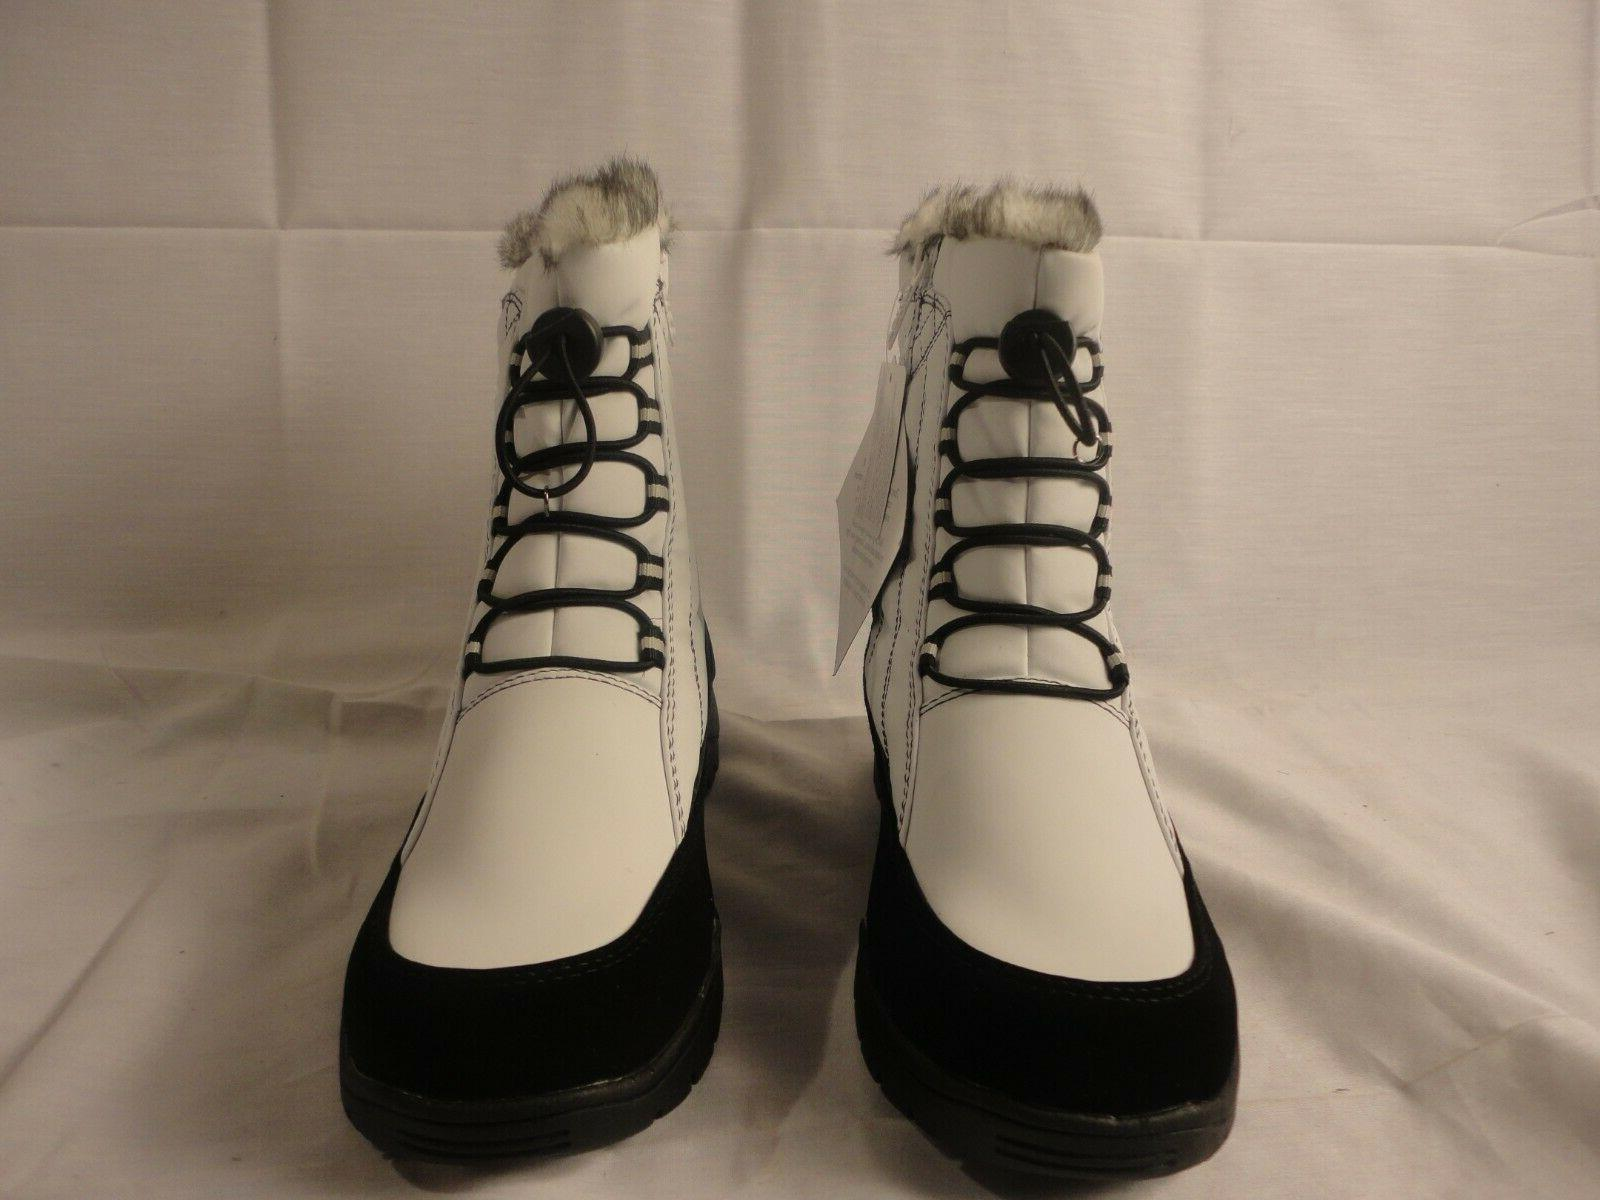 Totes Elle White Boots Fur Top Size 8M Brand New Tags